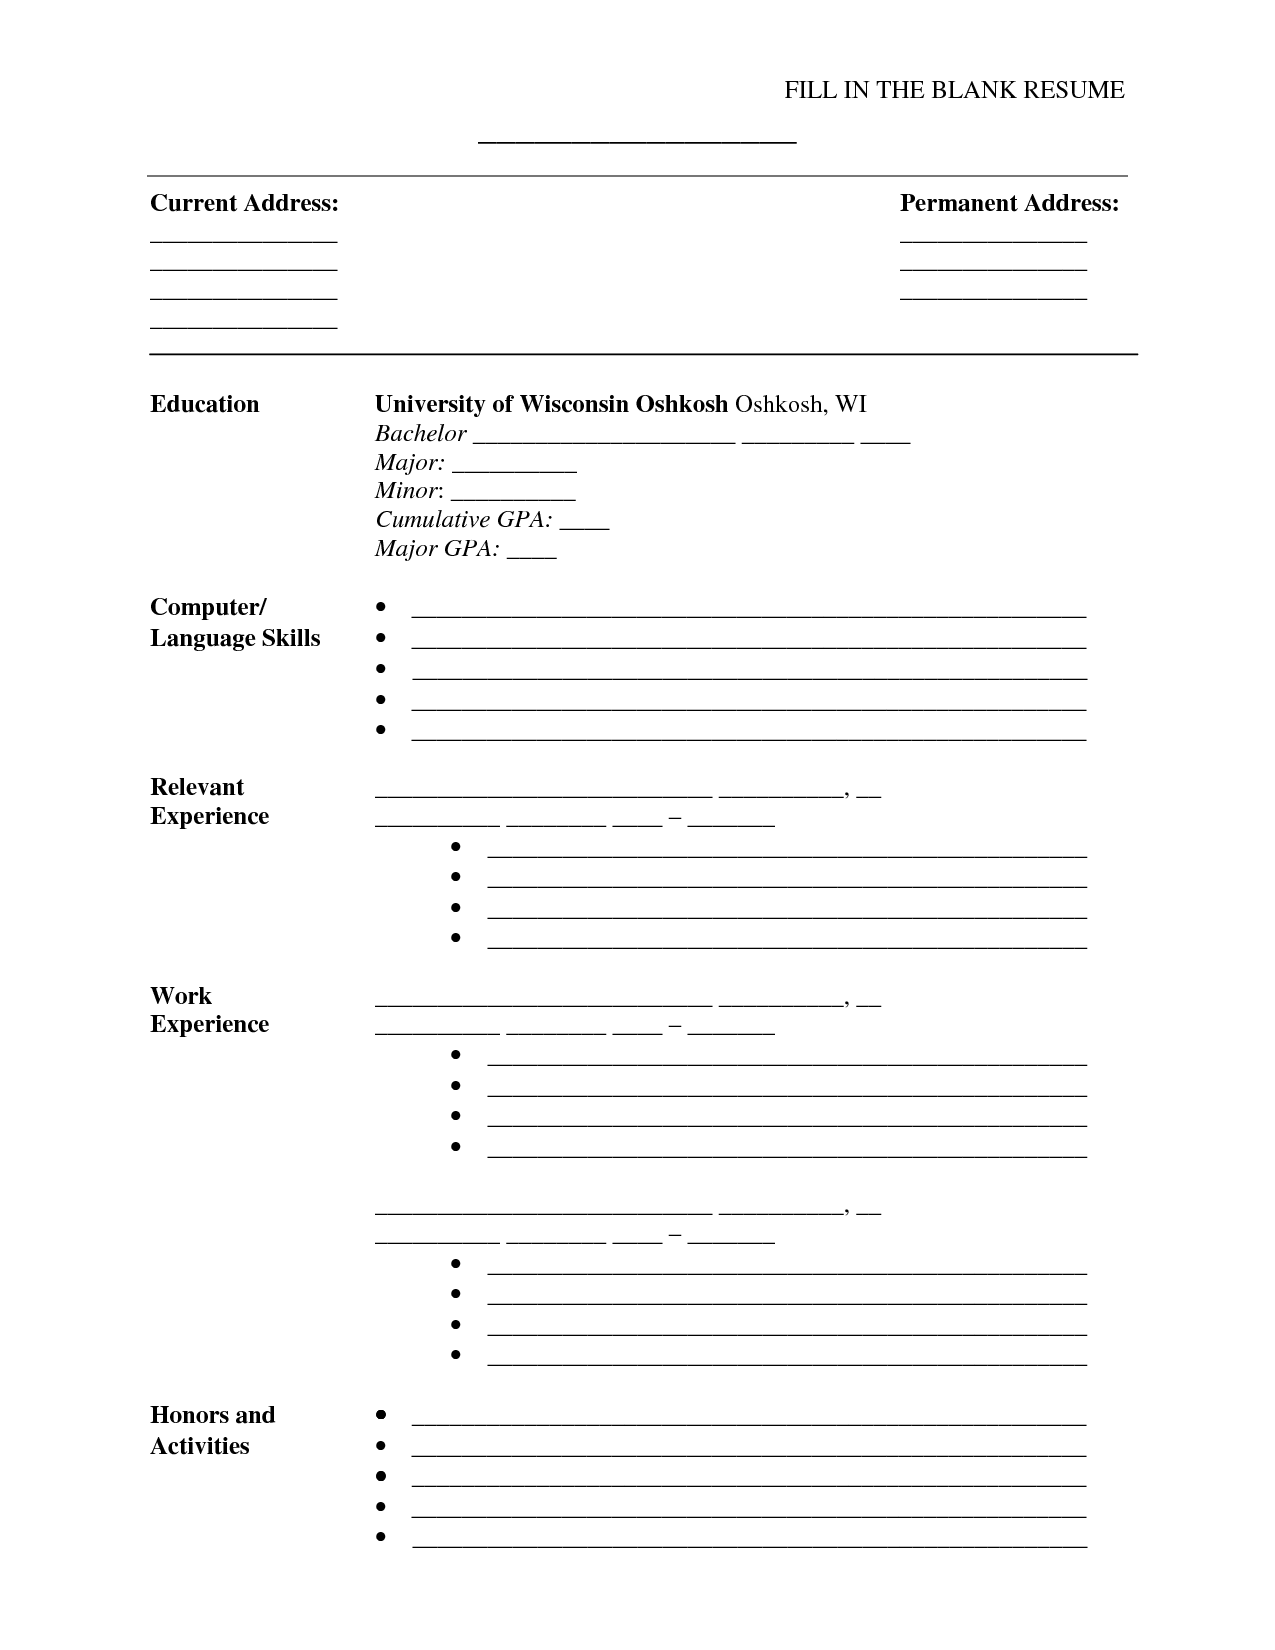 fill in the blanks resumes